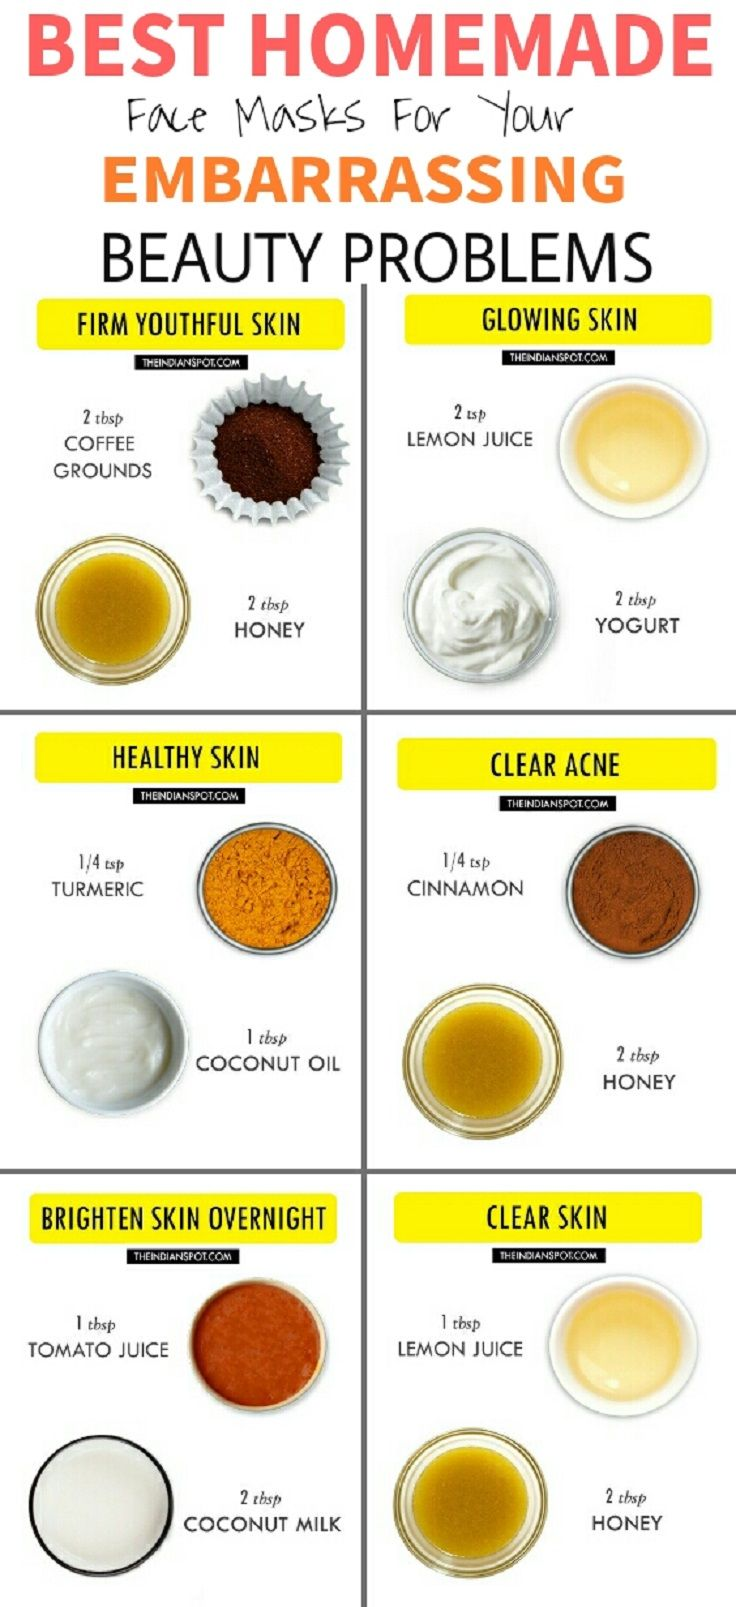 Homemade Face Masks for 12 Different Beauty Problems - 12